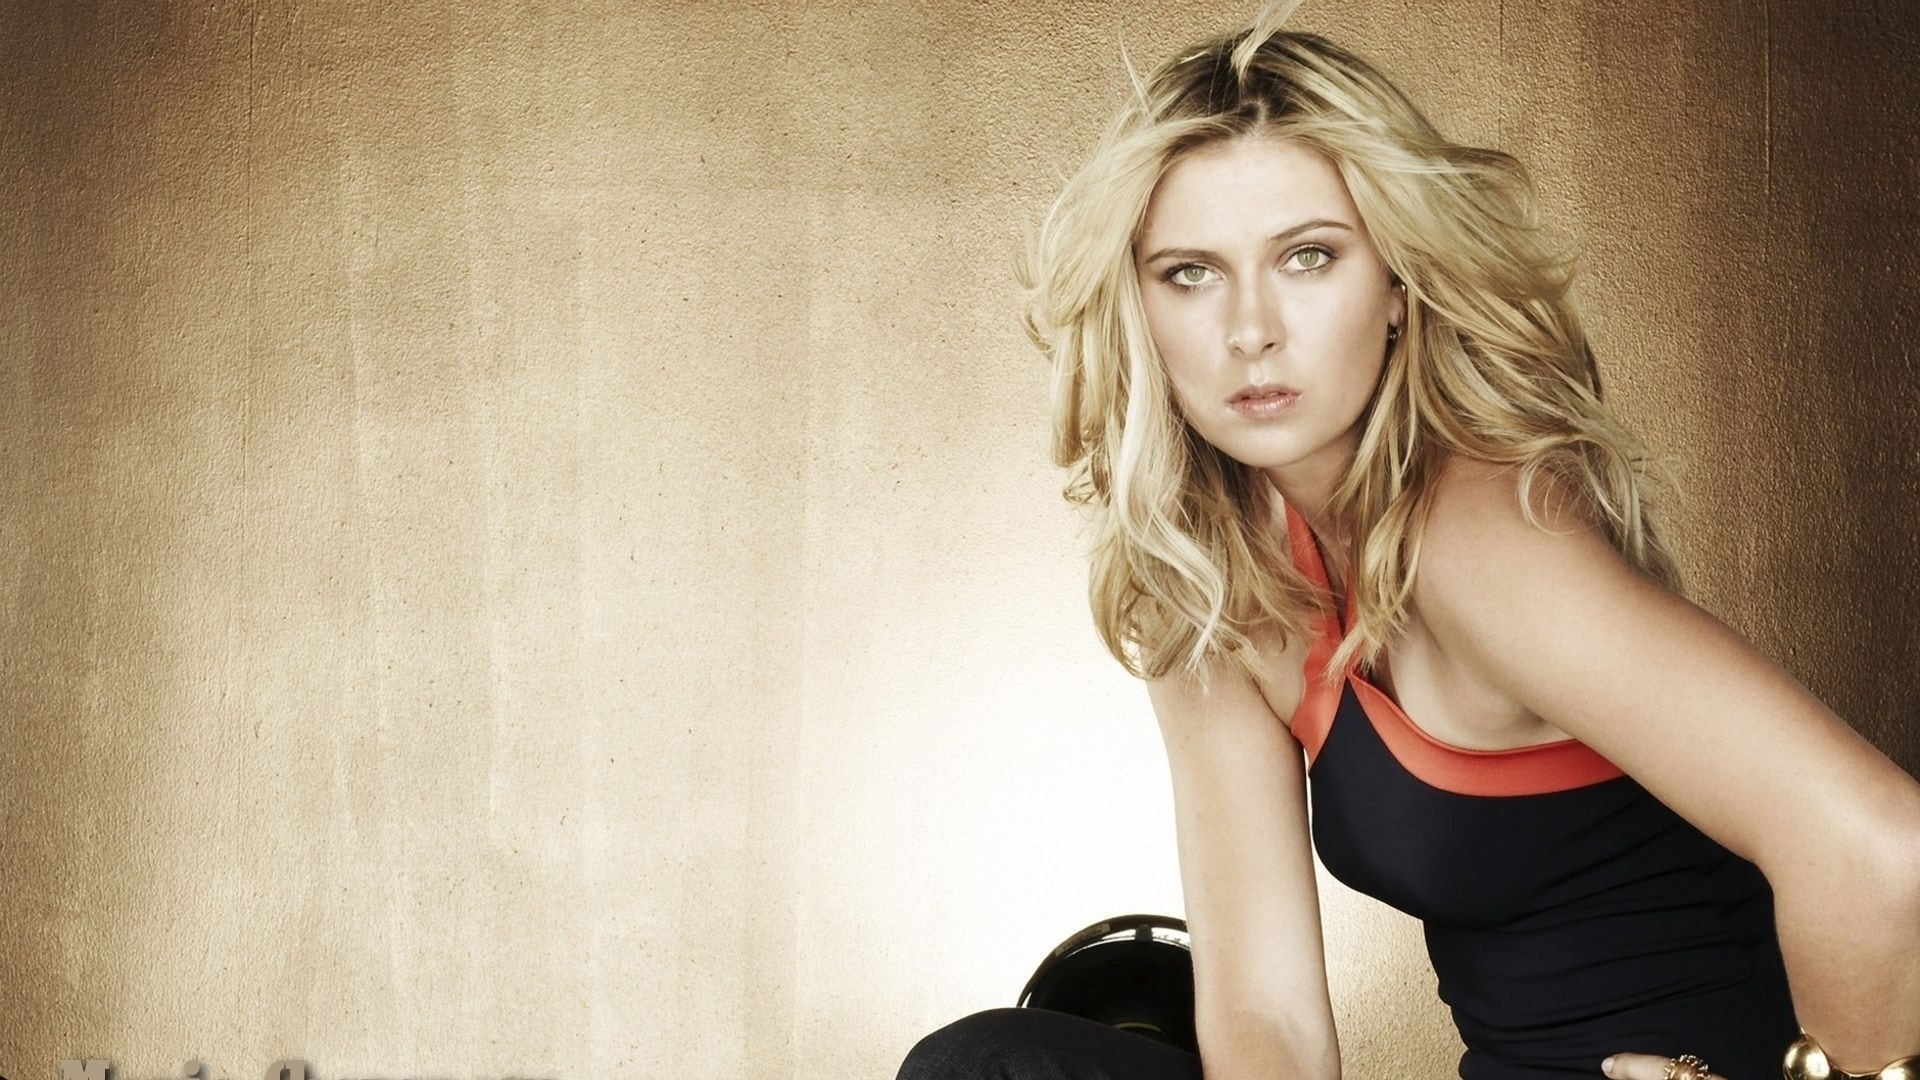 Maria Sharapova Background